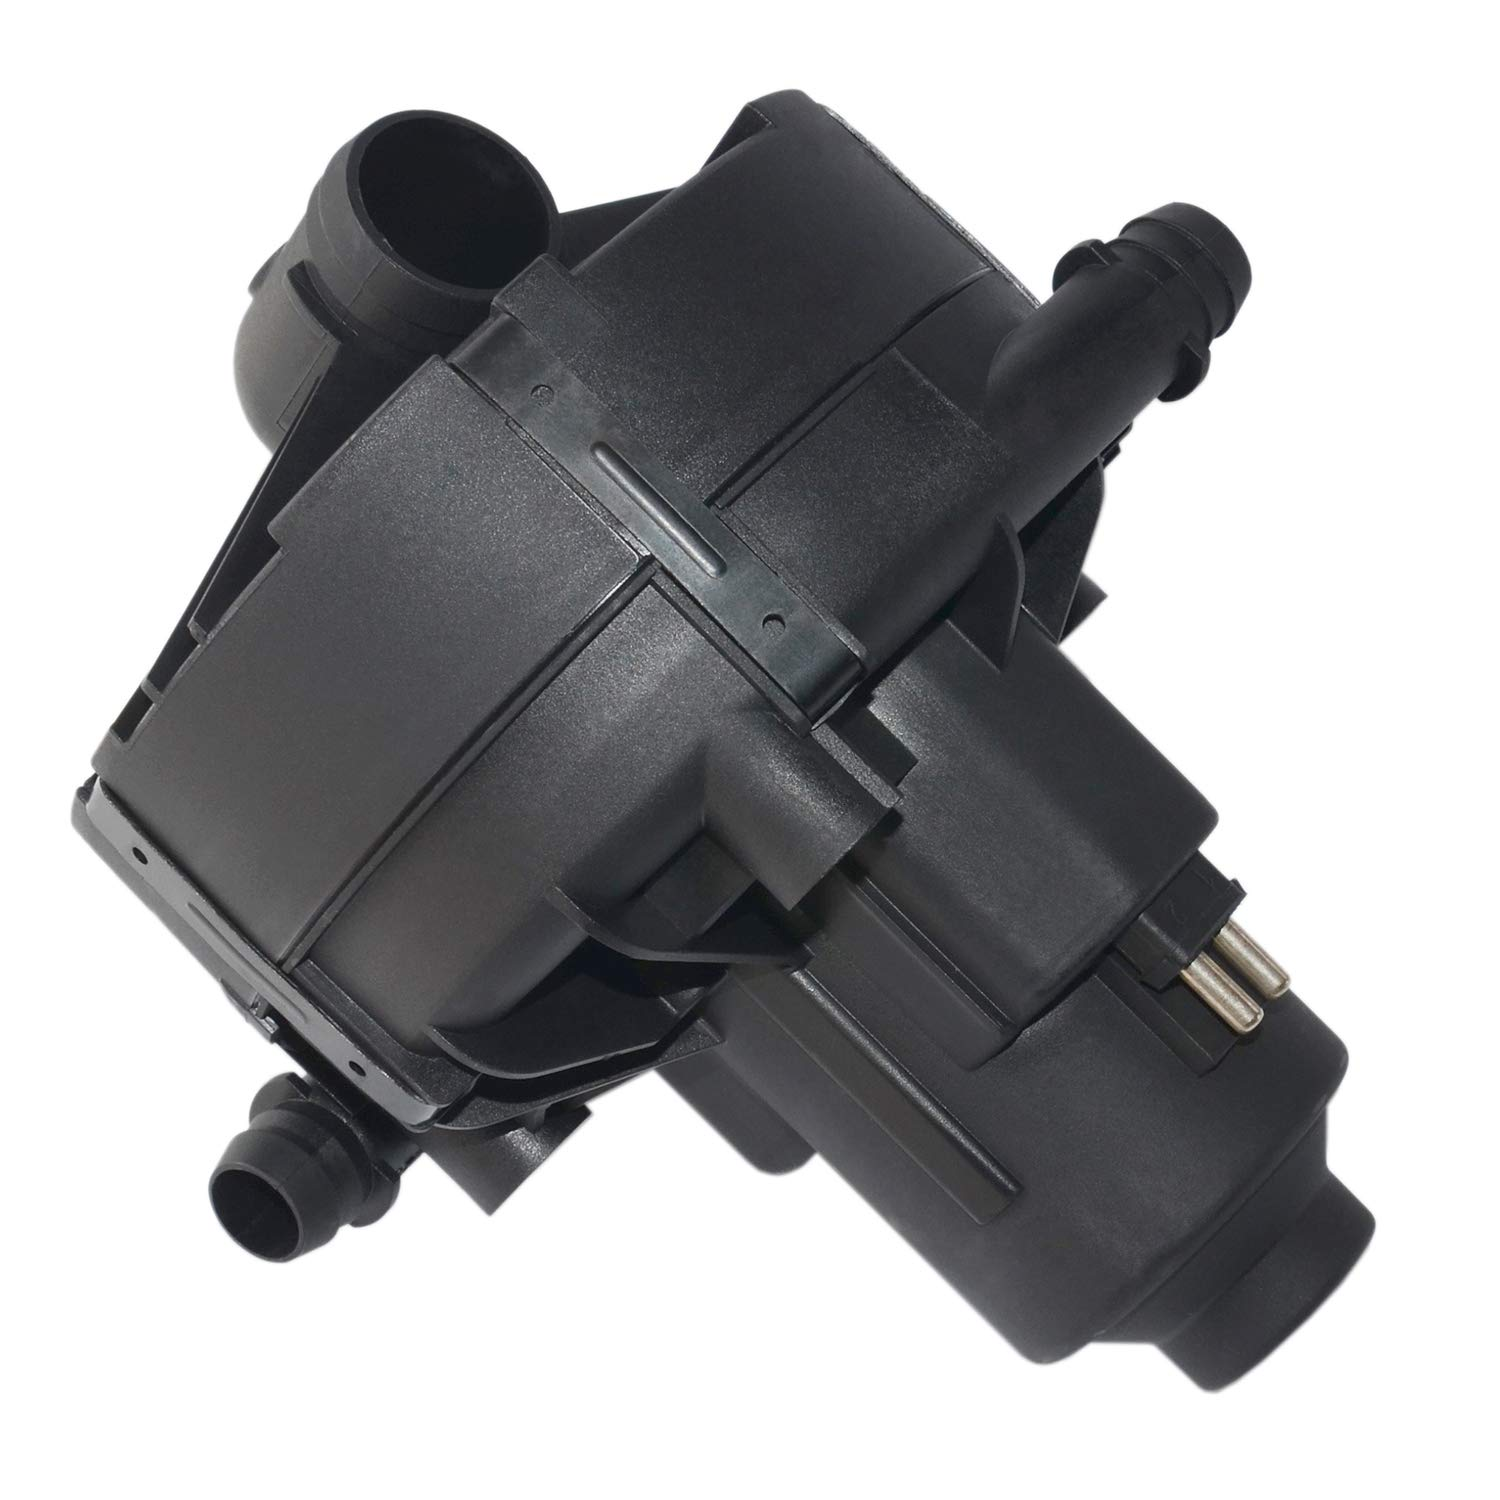 Secondary Air Injection Smog Air Pump For Mercedes Benz C230 C280 C300 C350 GLK350 SLK350 E350 GL450 GL550 R350 ML350 SL550 Model Years 2005-2015 OEM# A0580000025 A0001405185